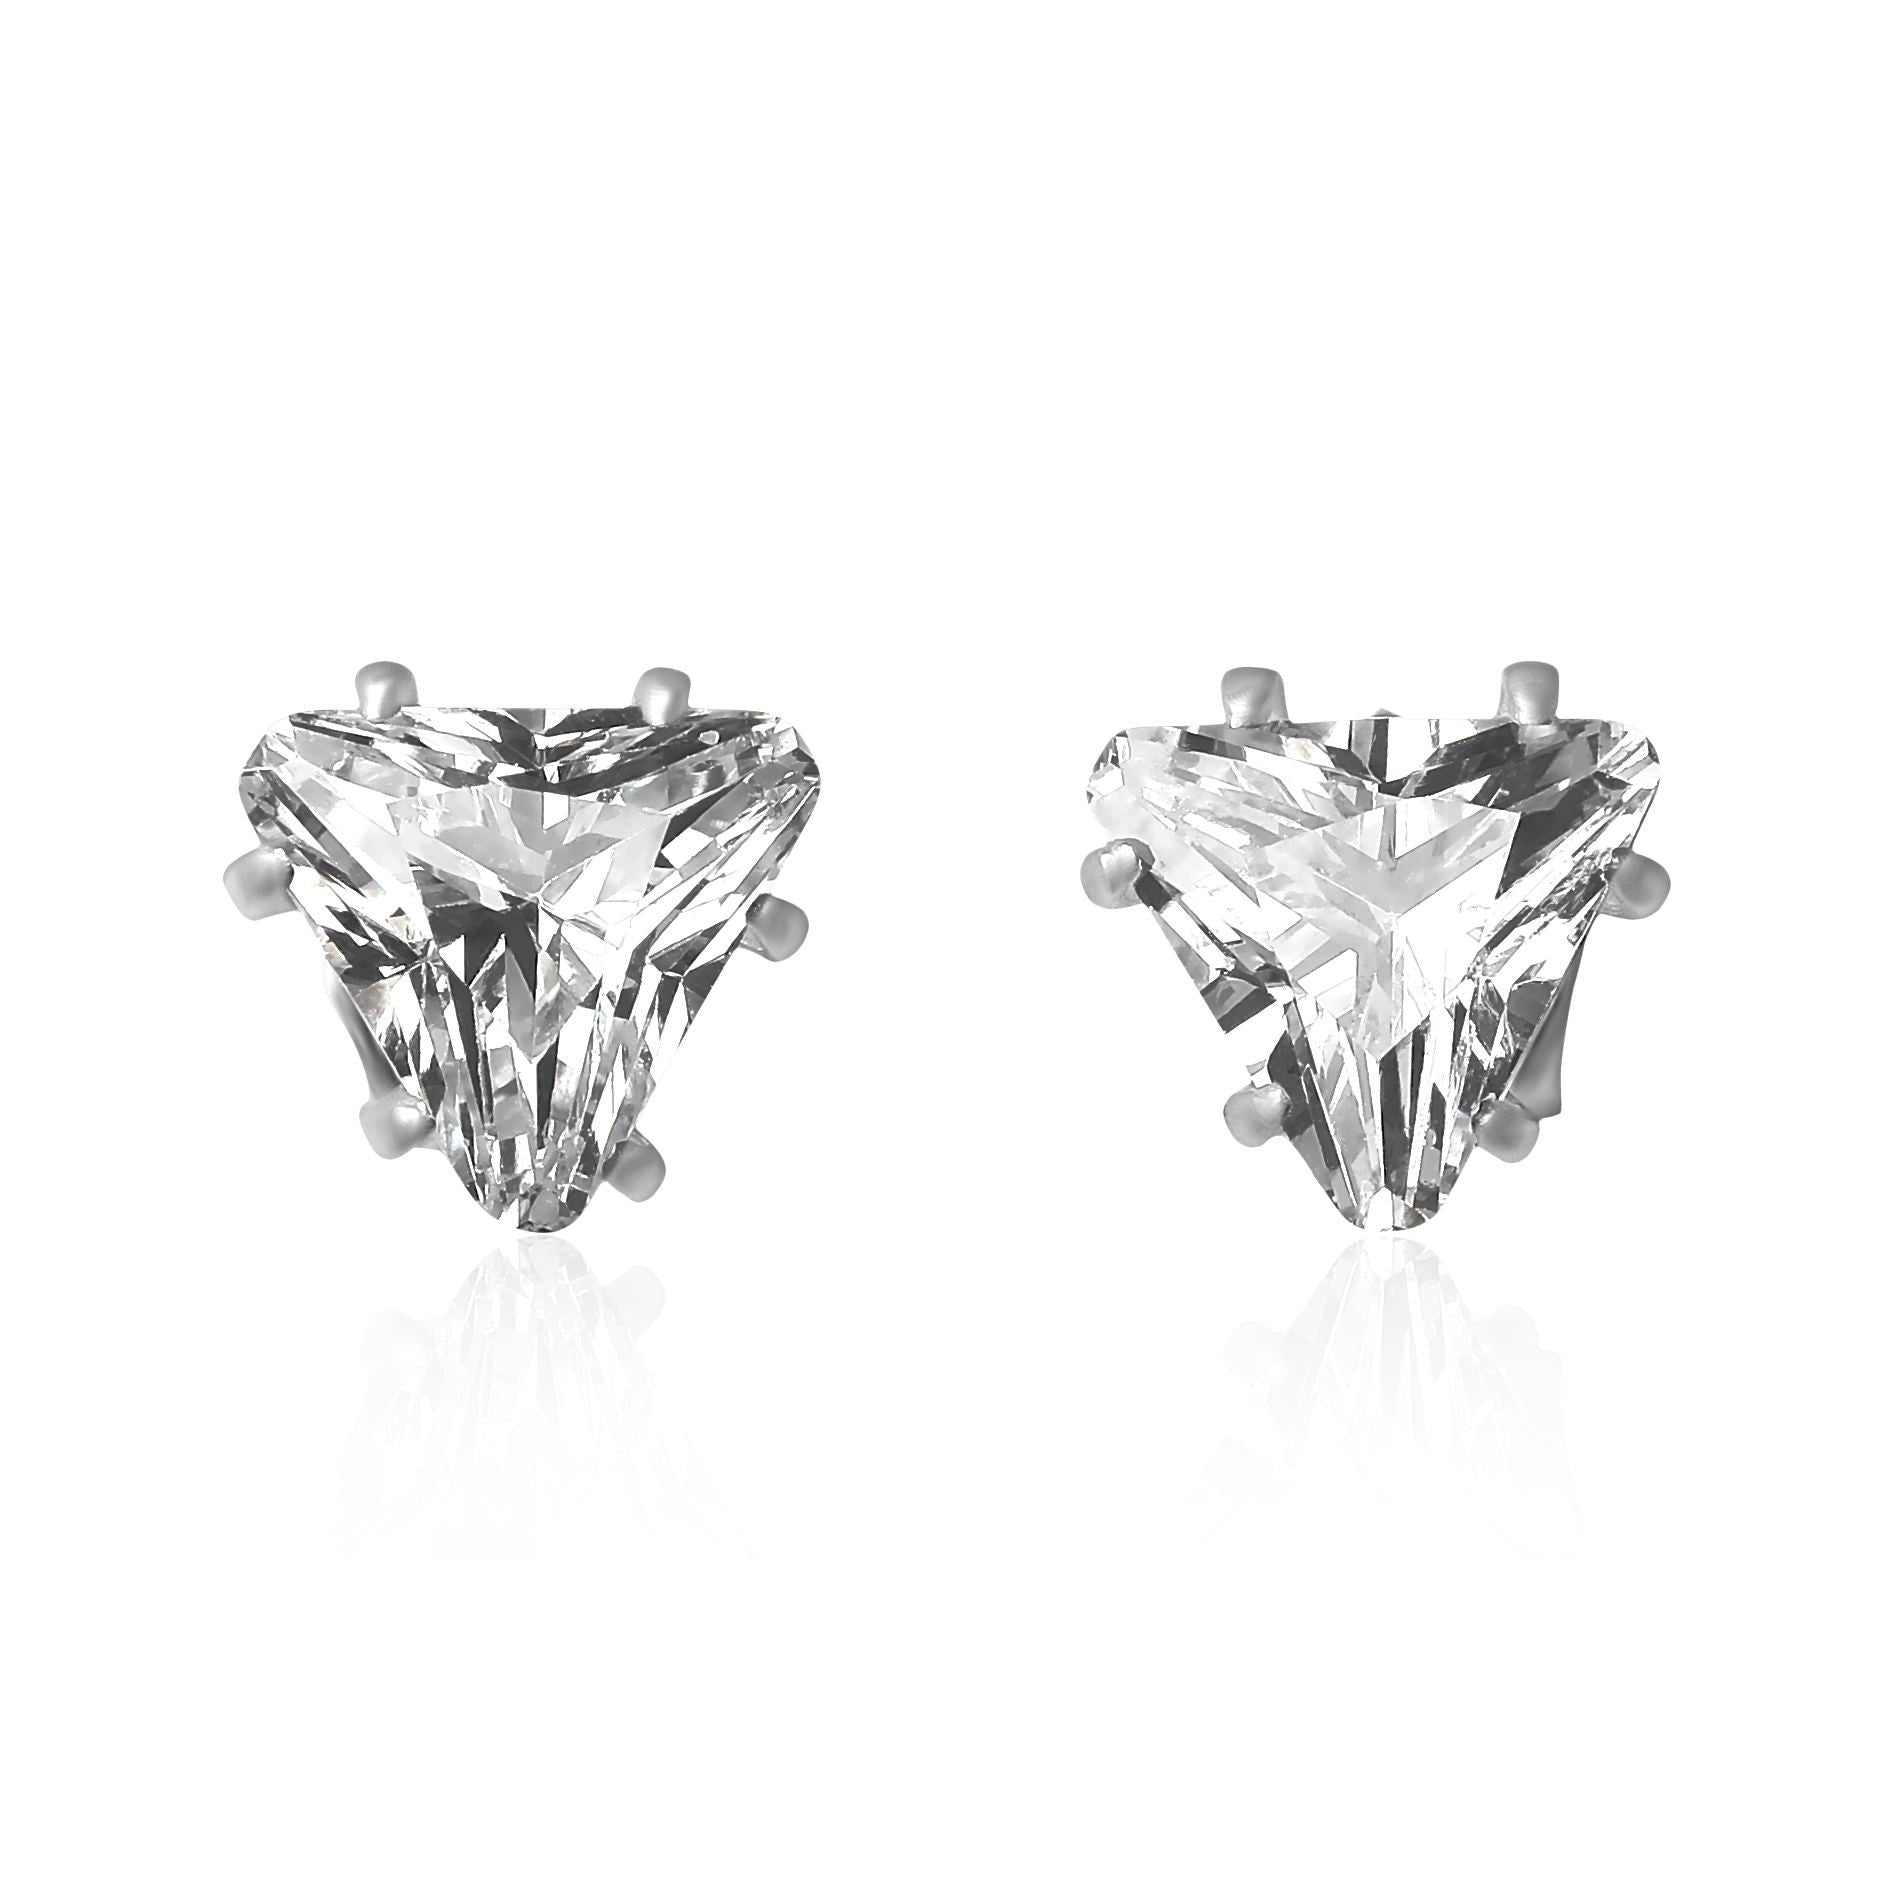 EZ-2300 Triangle CZ Stud Earrings 8mm | Teeda